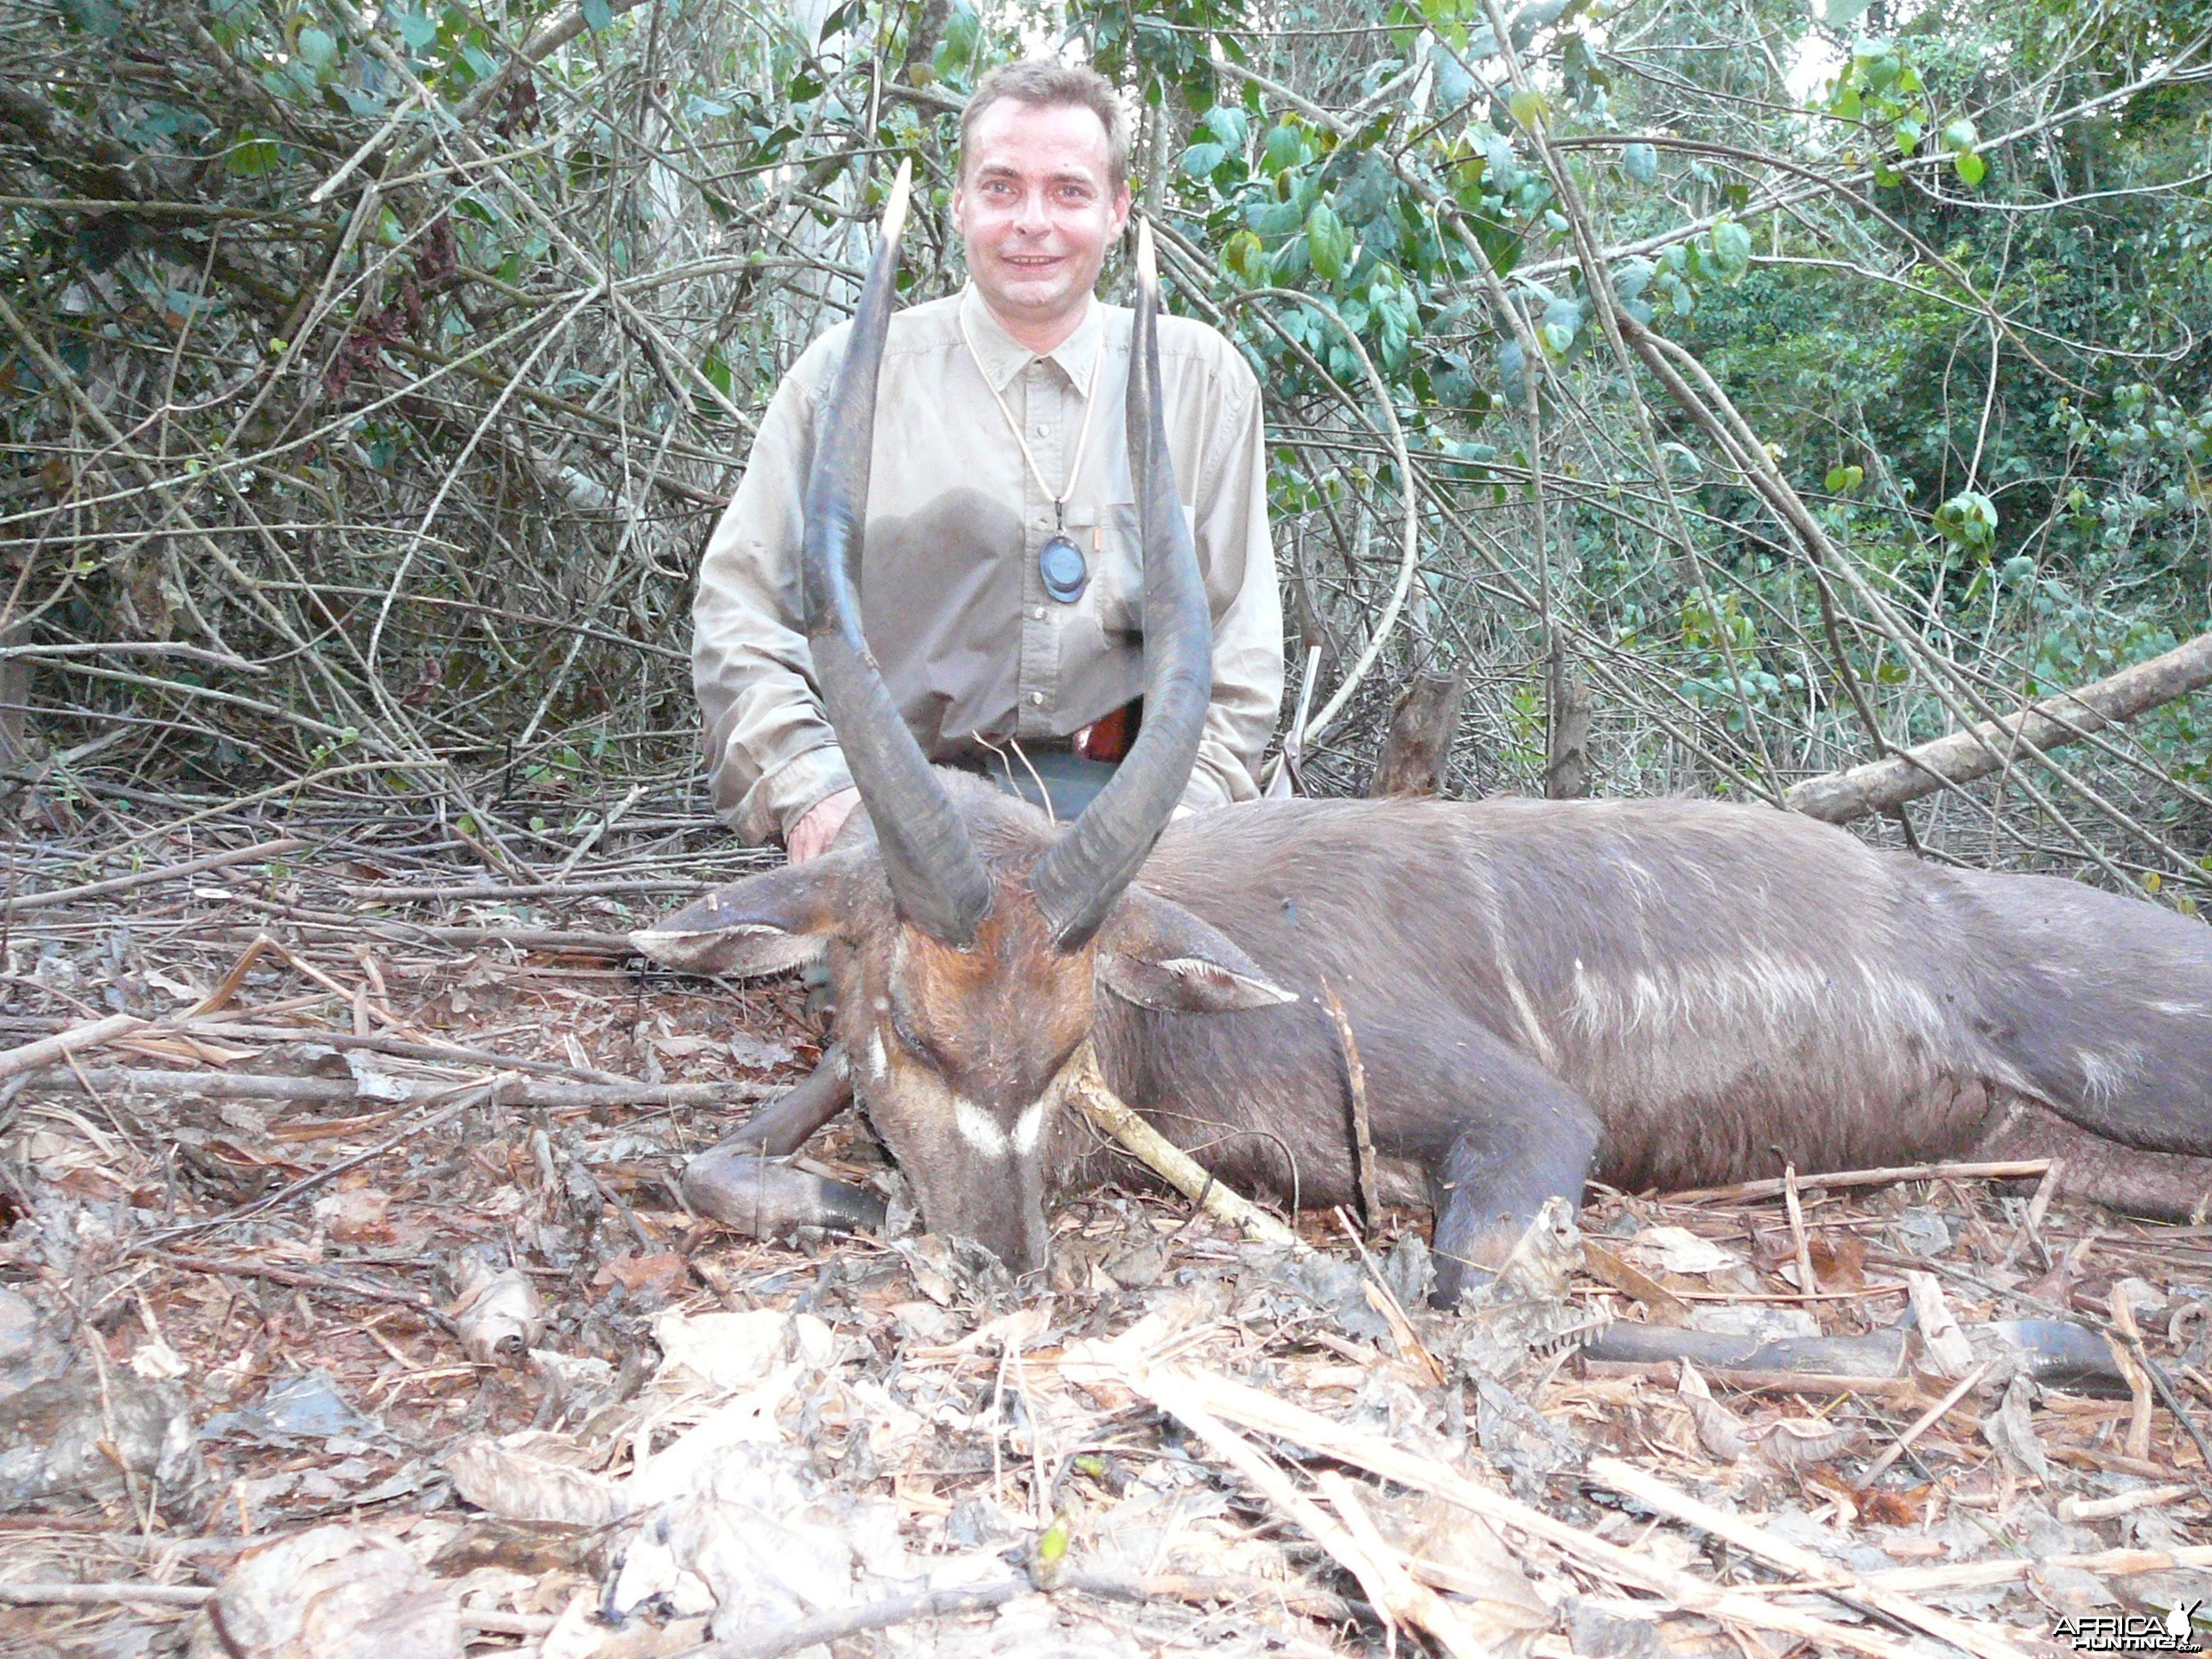 Western Sitatunga hunted in Cameroon with Club Faune